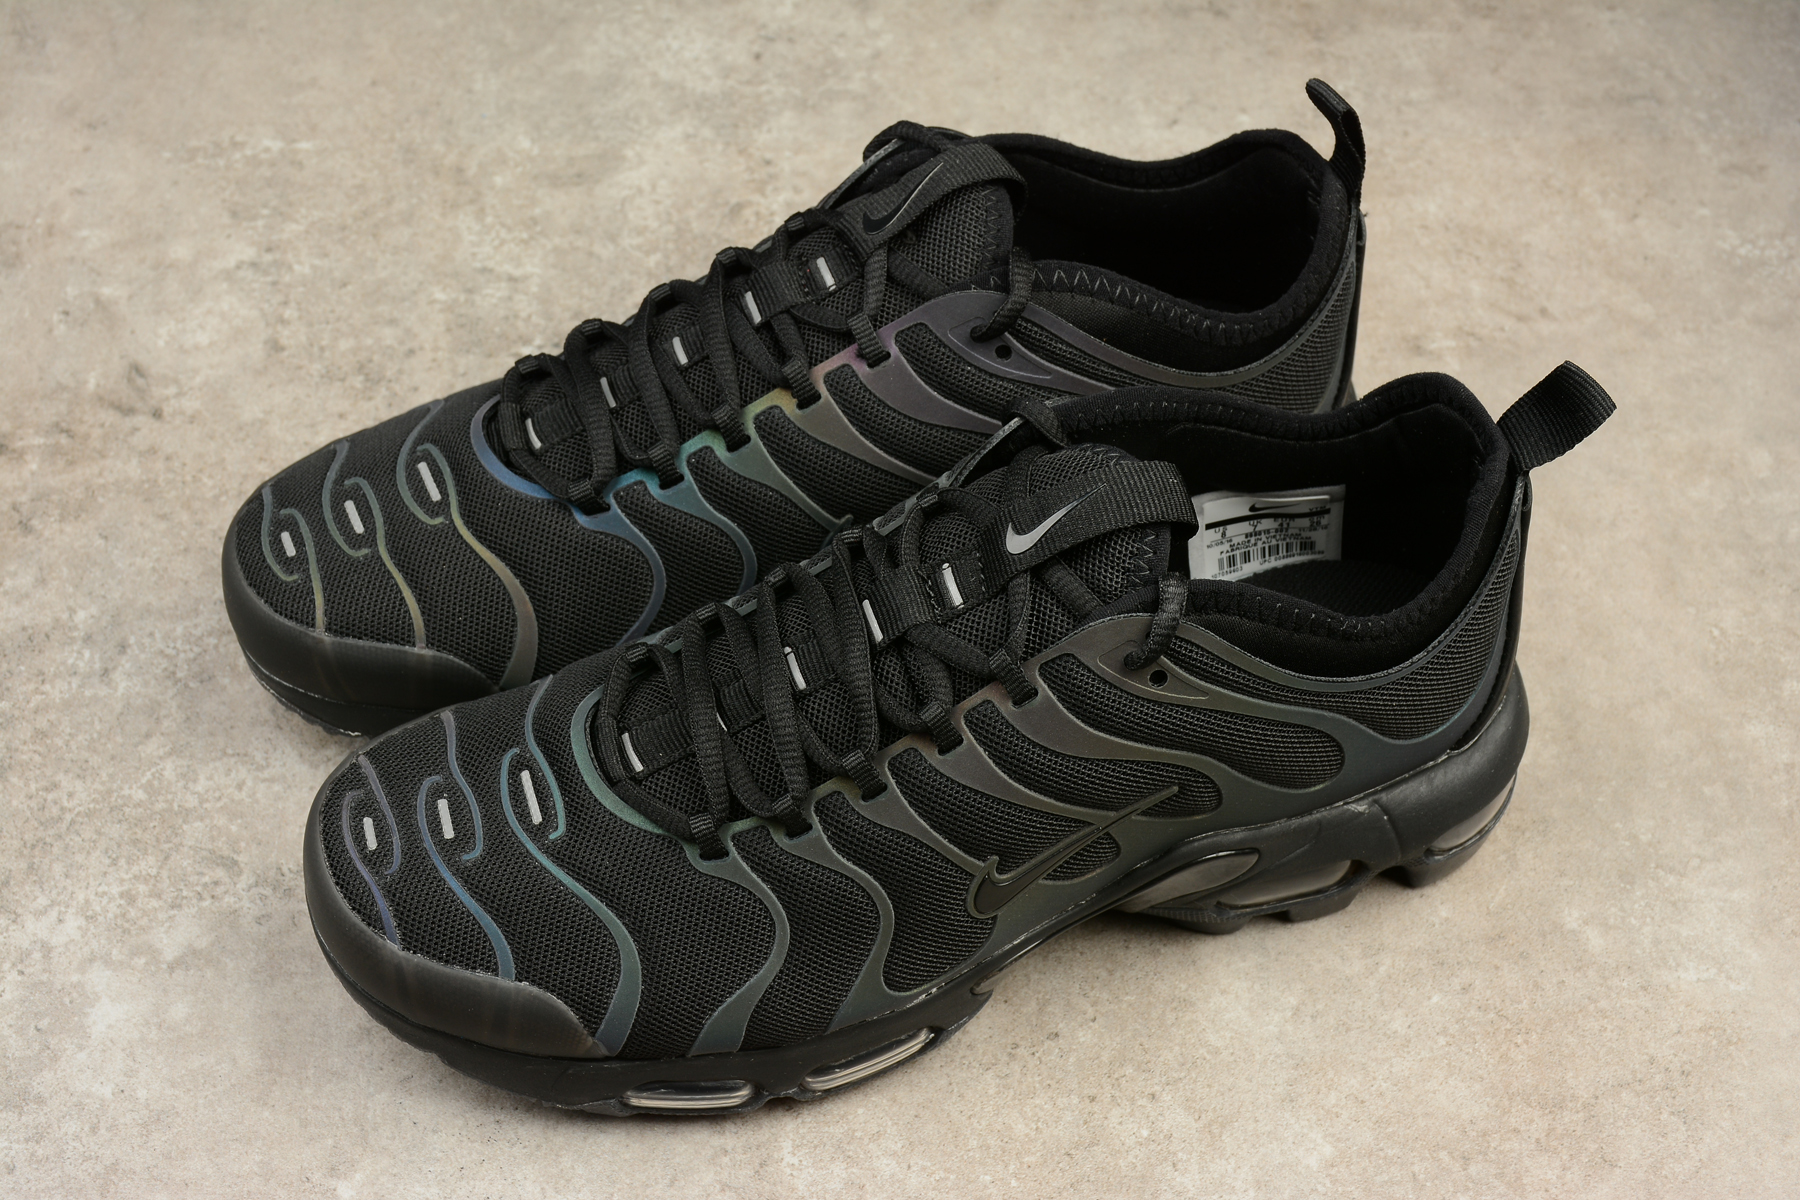 nike air alarm size us 10 year rate 898015-002 – Fitforhealth